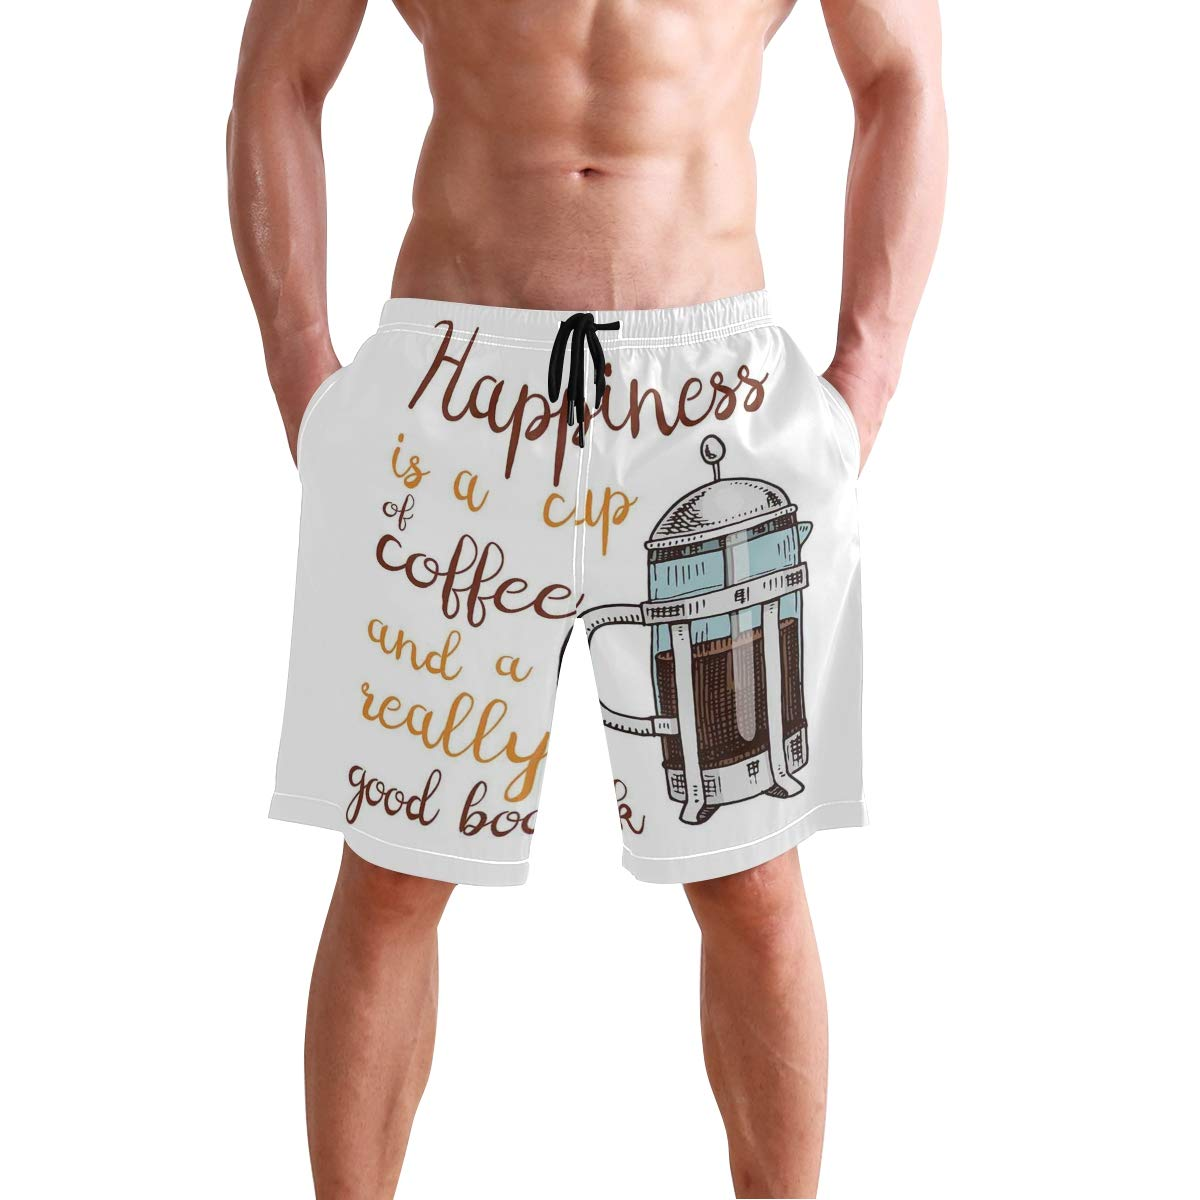 COVASA Mens Summer ShortsFrench Press with Hot Aromatic Beverage and Hand Writ